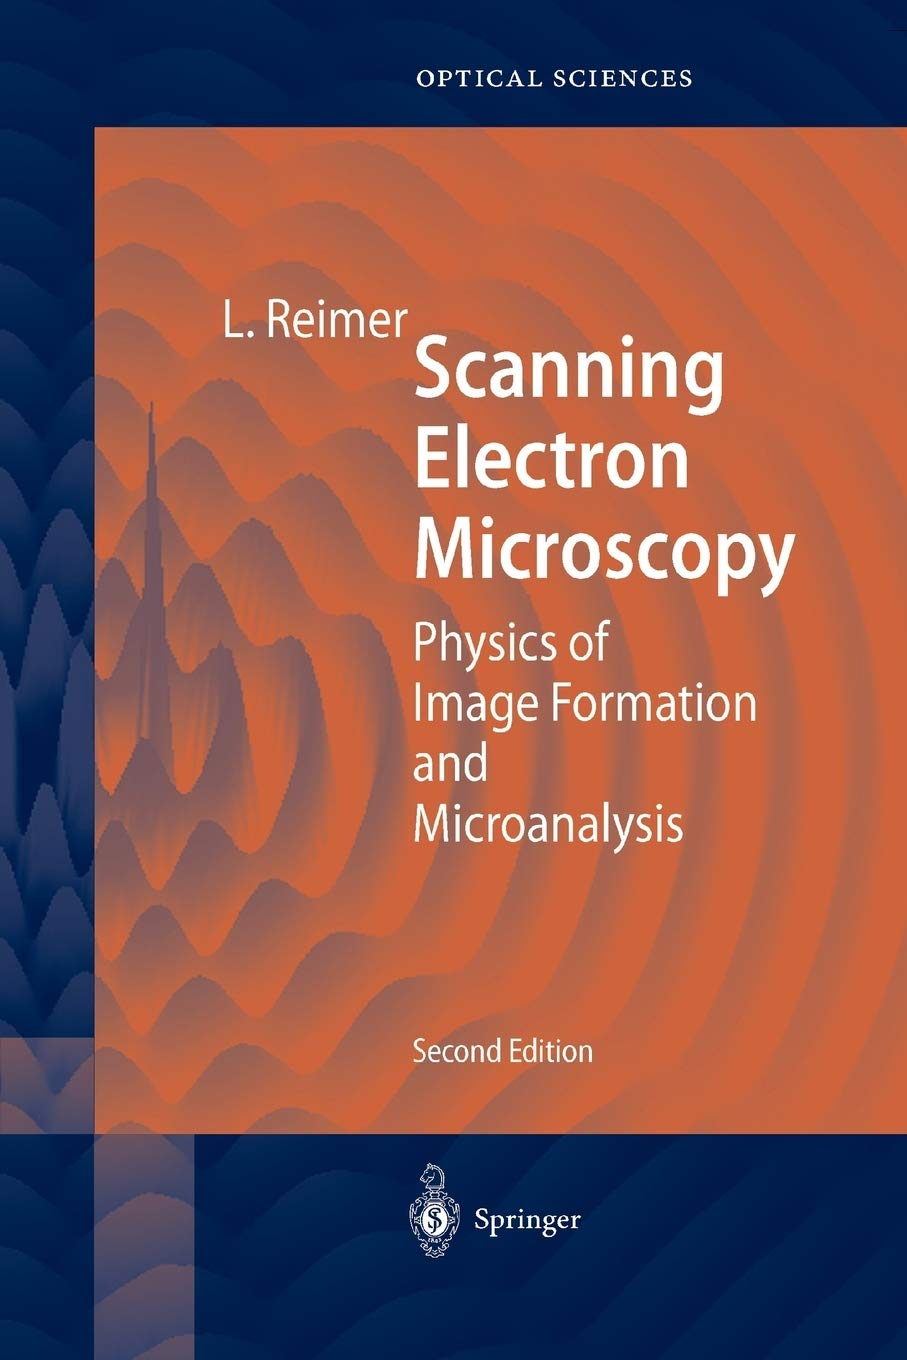 Scanning Electron Microscopy: Physics of Image Formation and Microanalysis: 45 Springer Series in Optical Sciences: Amazon.es: Reimer, Ludwig, Hawkes, P.W.: Libros en idiomas extranjeros